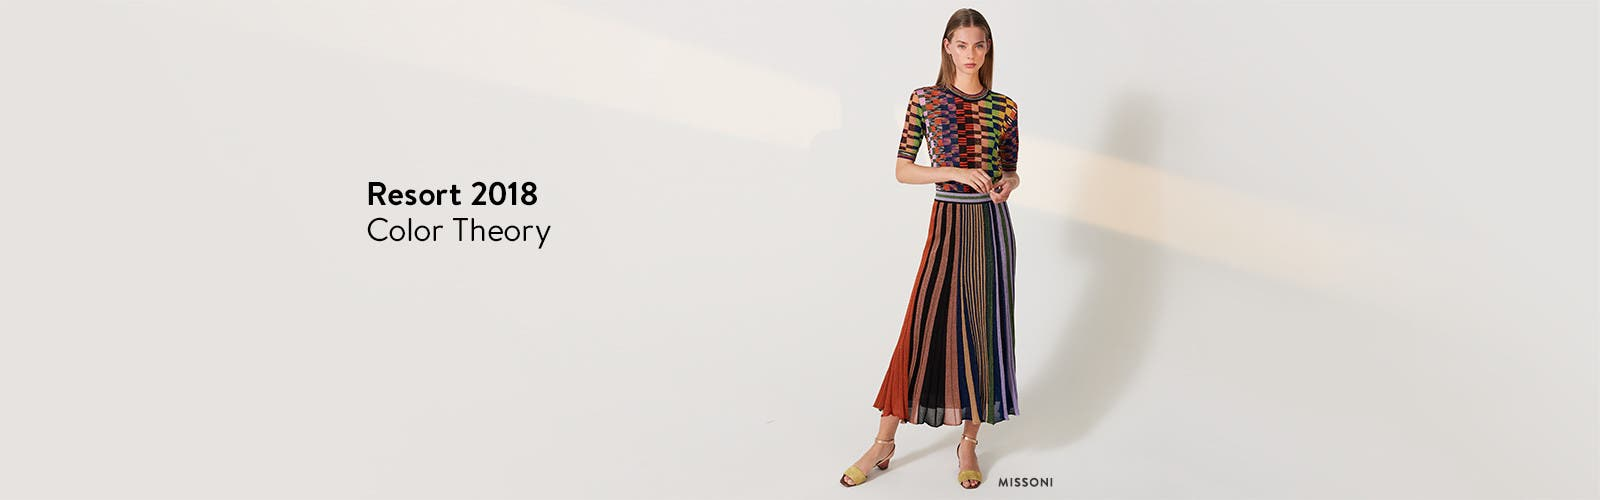 Designer resort 2018 collections to explore now: Missoni knit top and skirt.